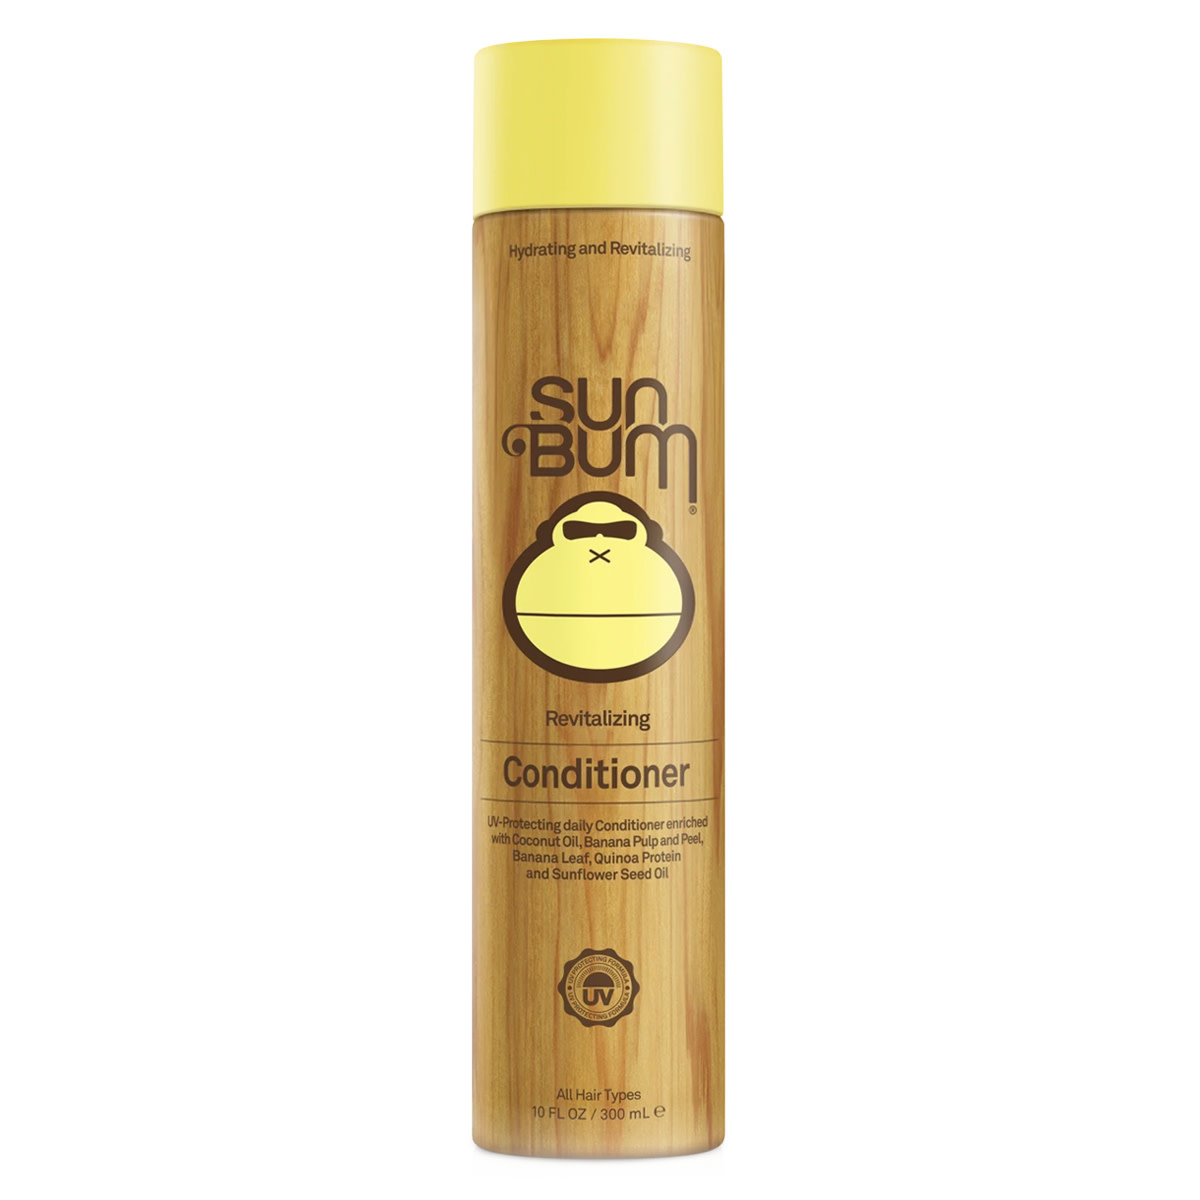 Sun Bum Sun Bum Revitalizing Conditioner